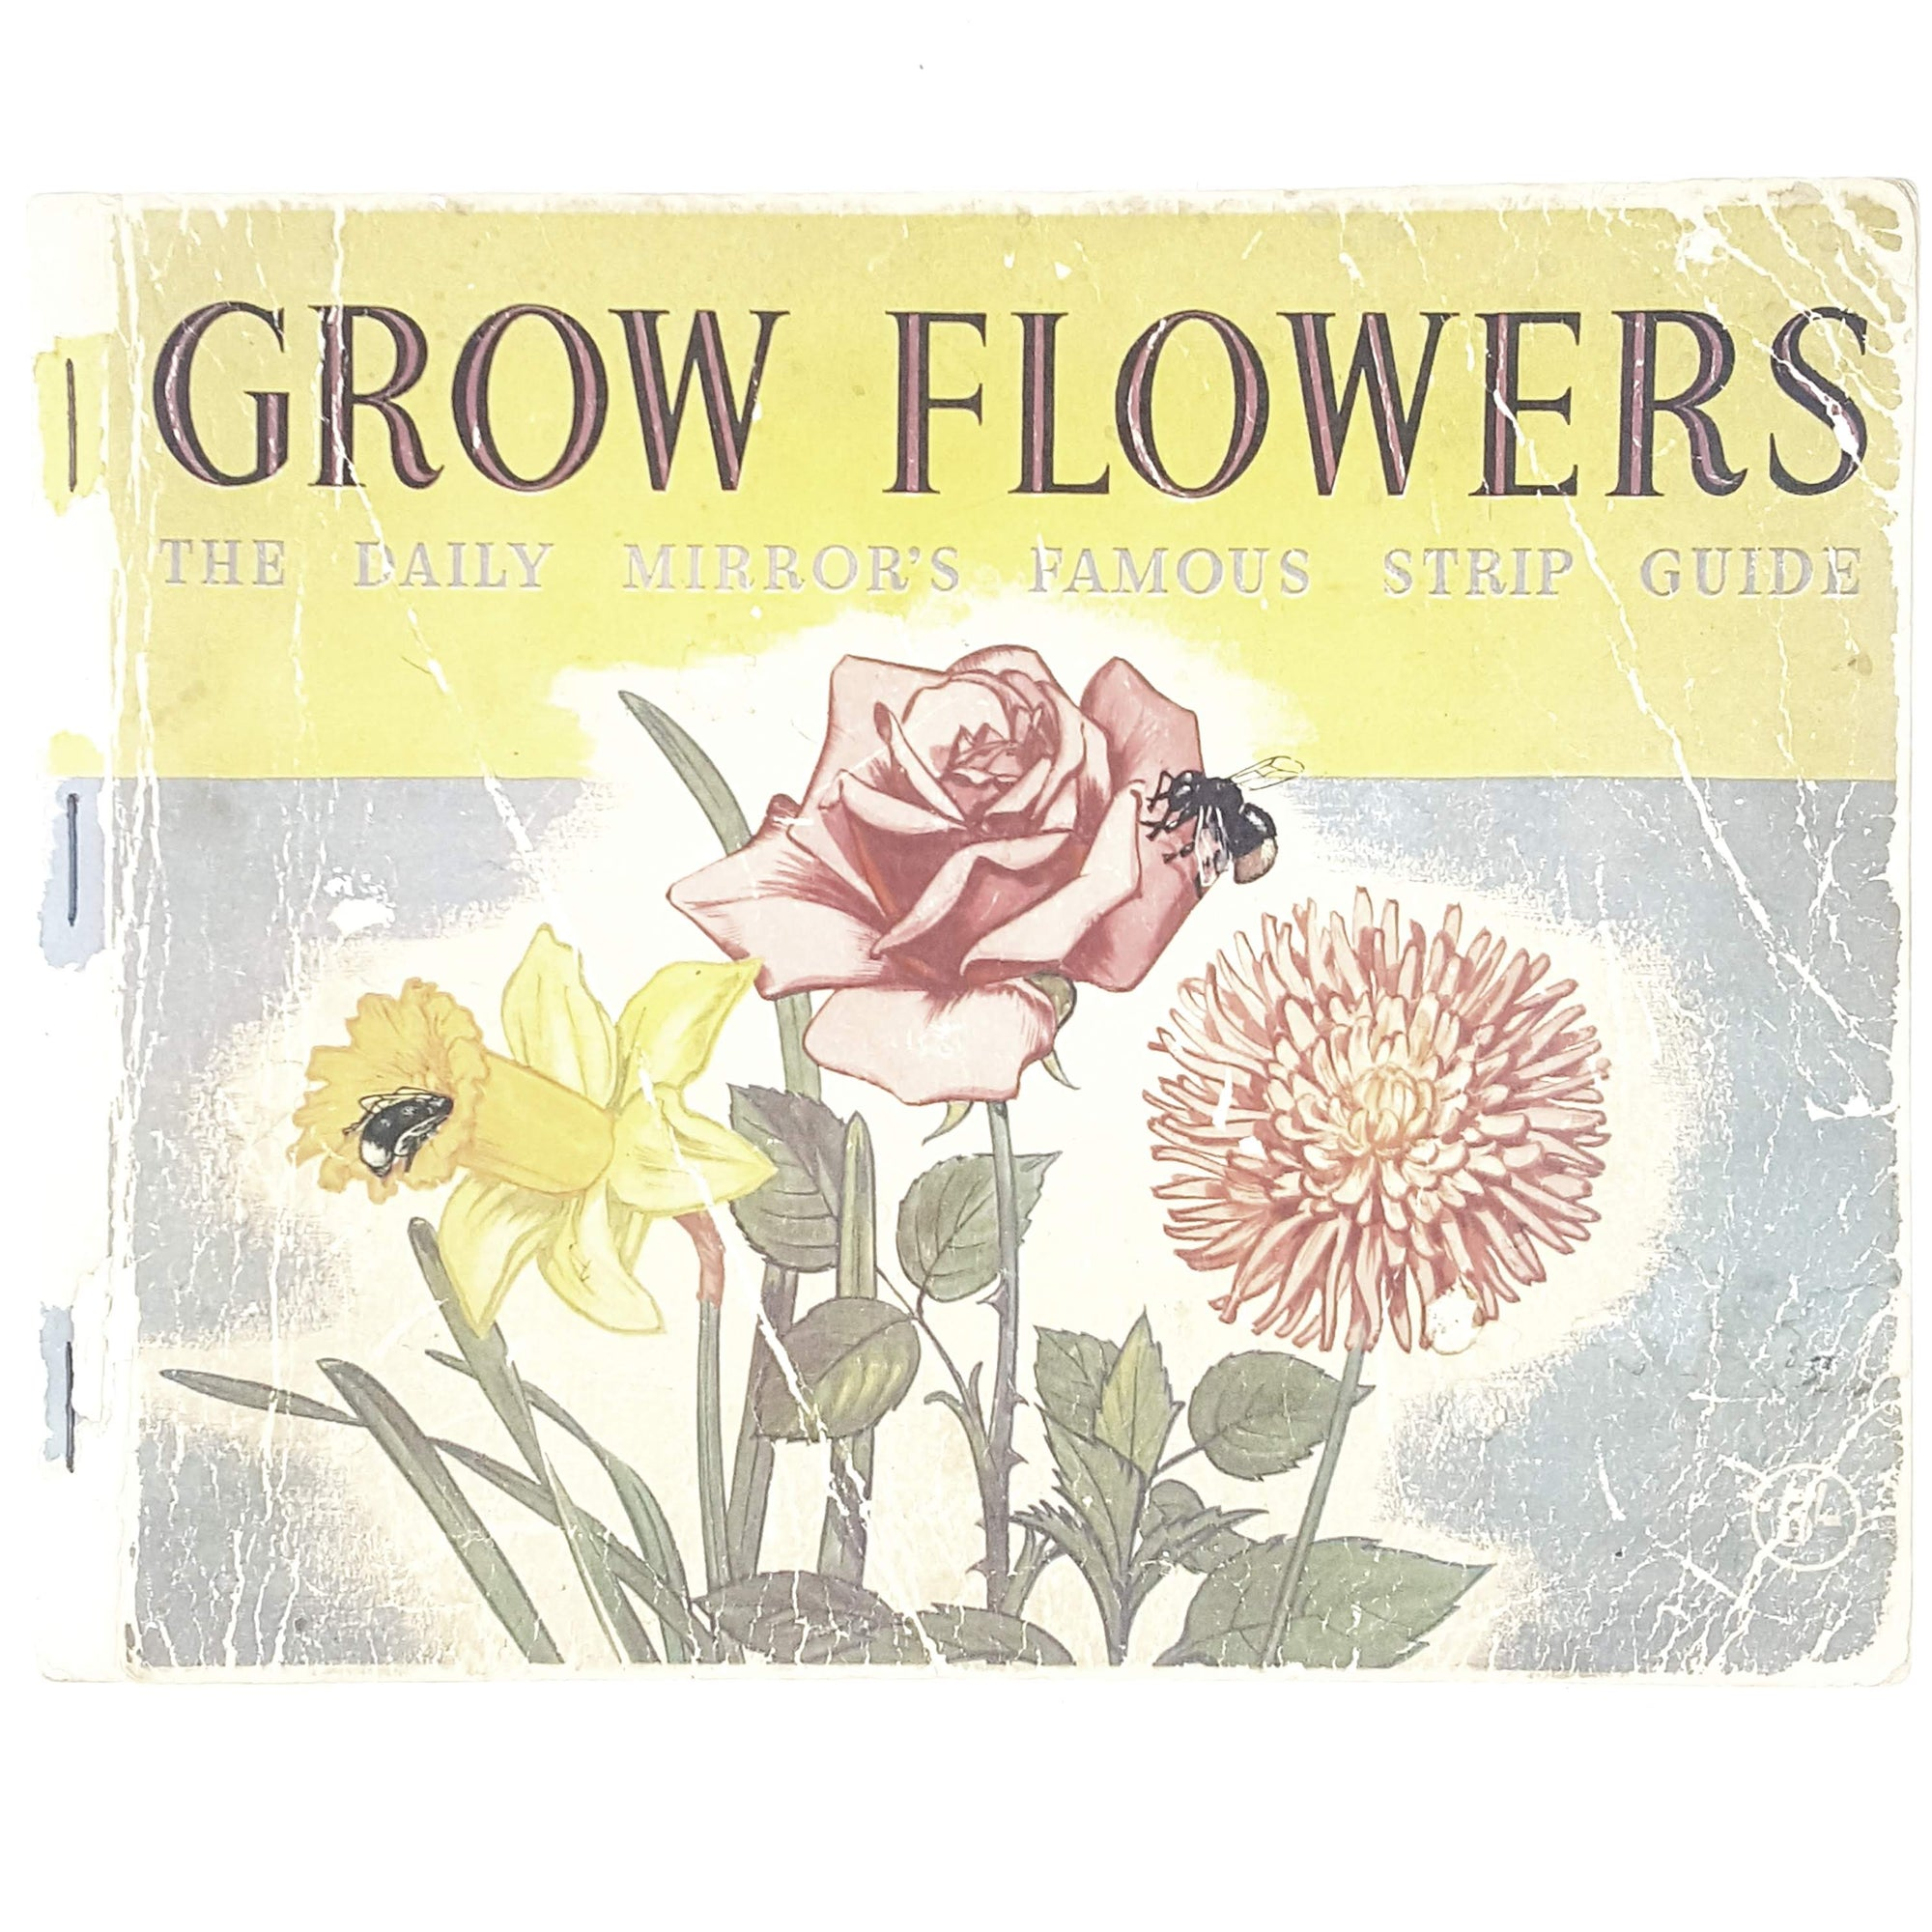 Grow Flowers: The Daily Mirror's Famous Strip Guide